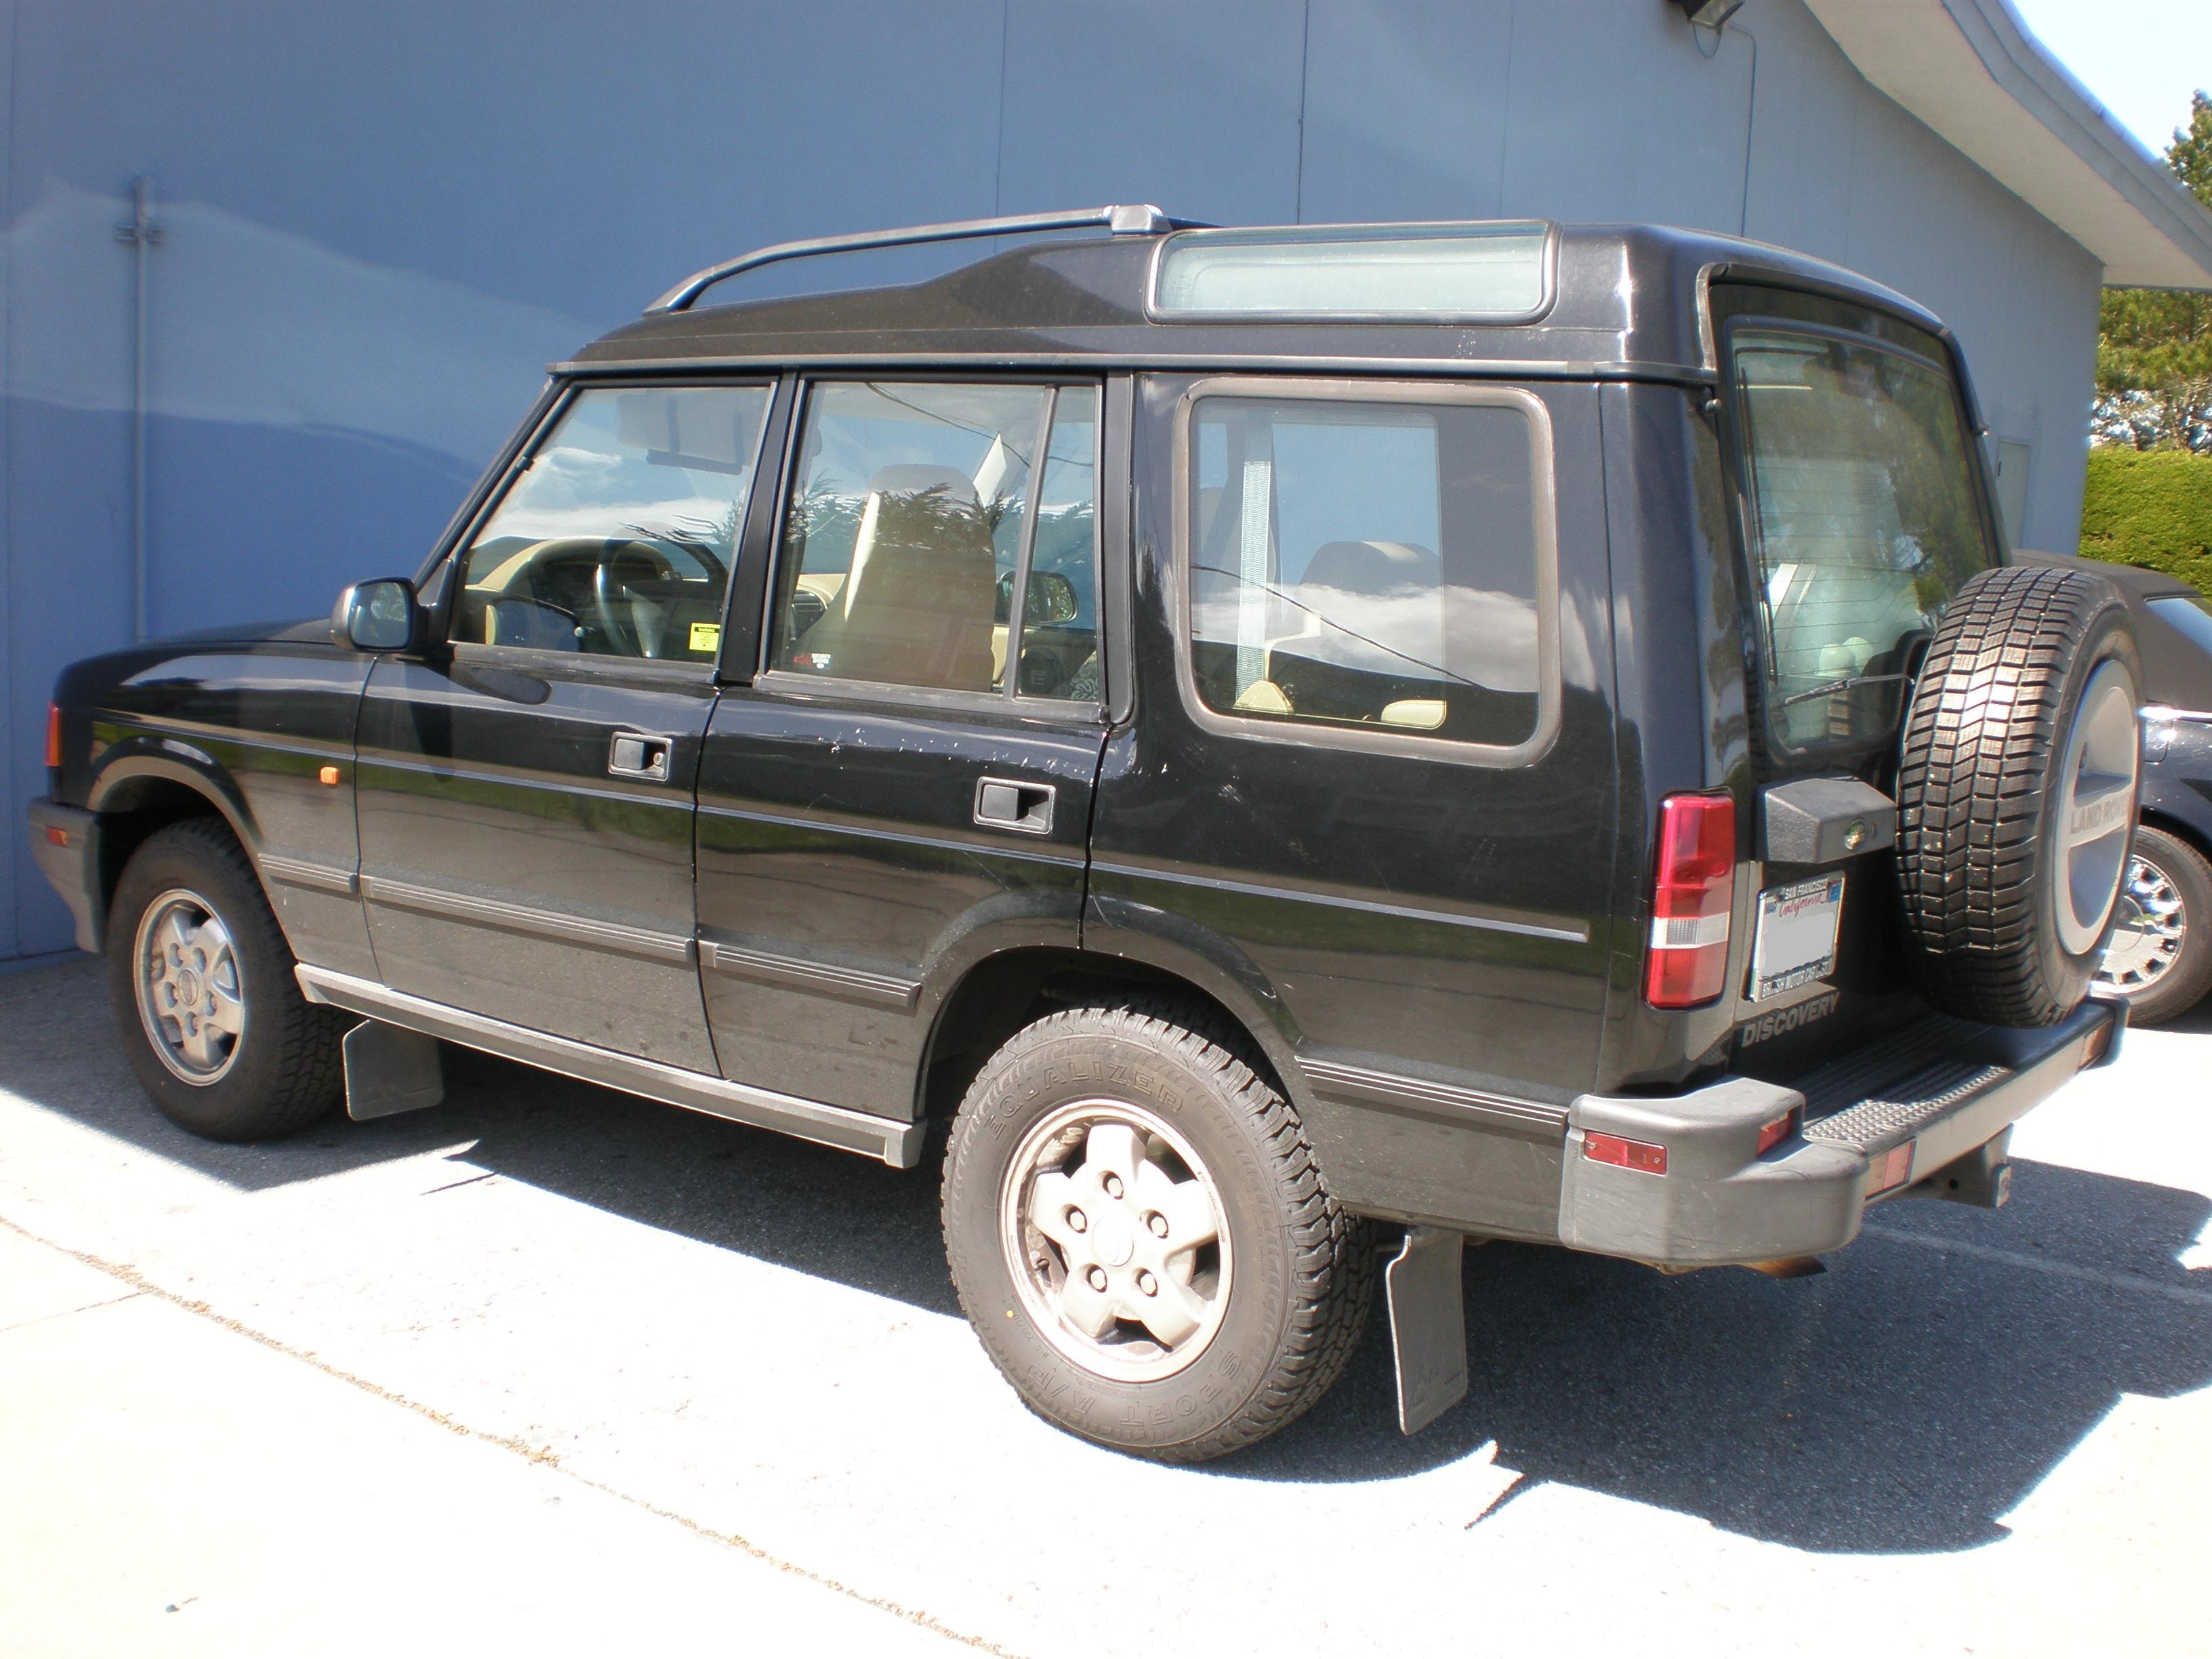 File:Black Land Rover Discovery left side.JPG - Wikimedia Commons